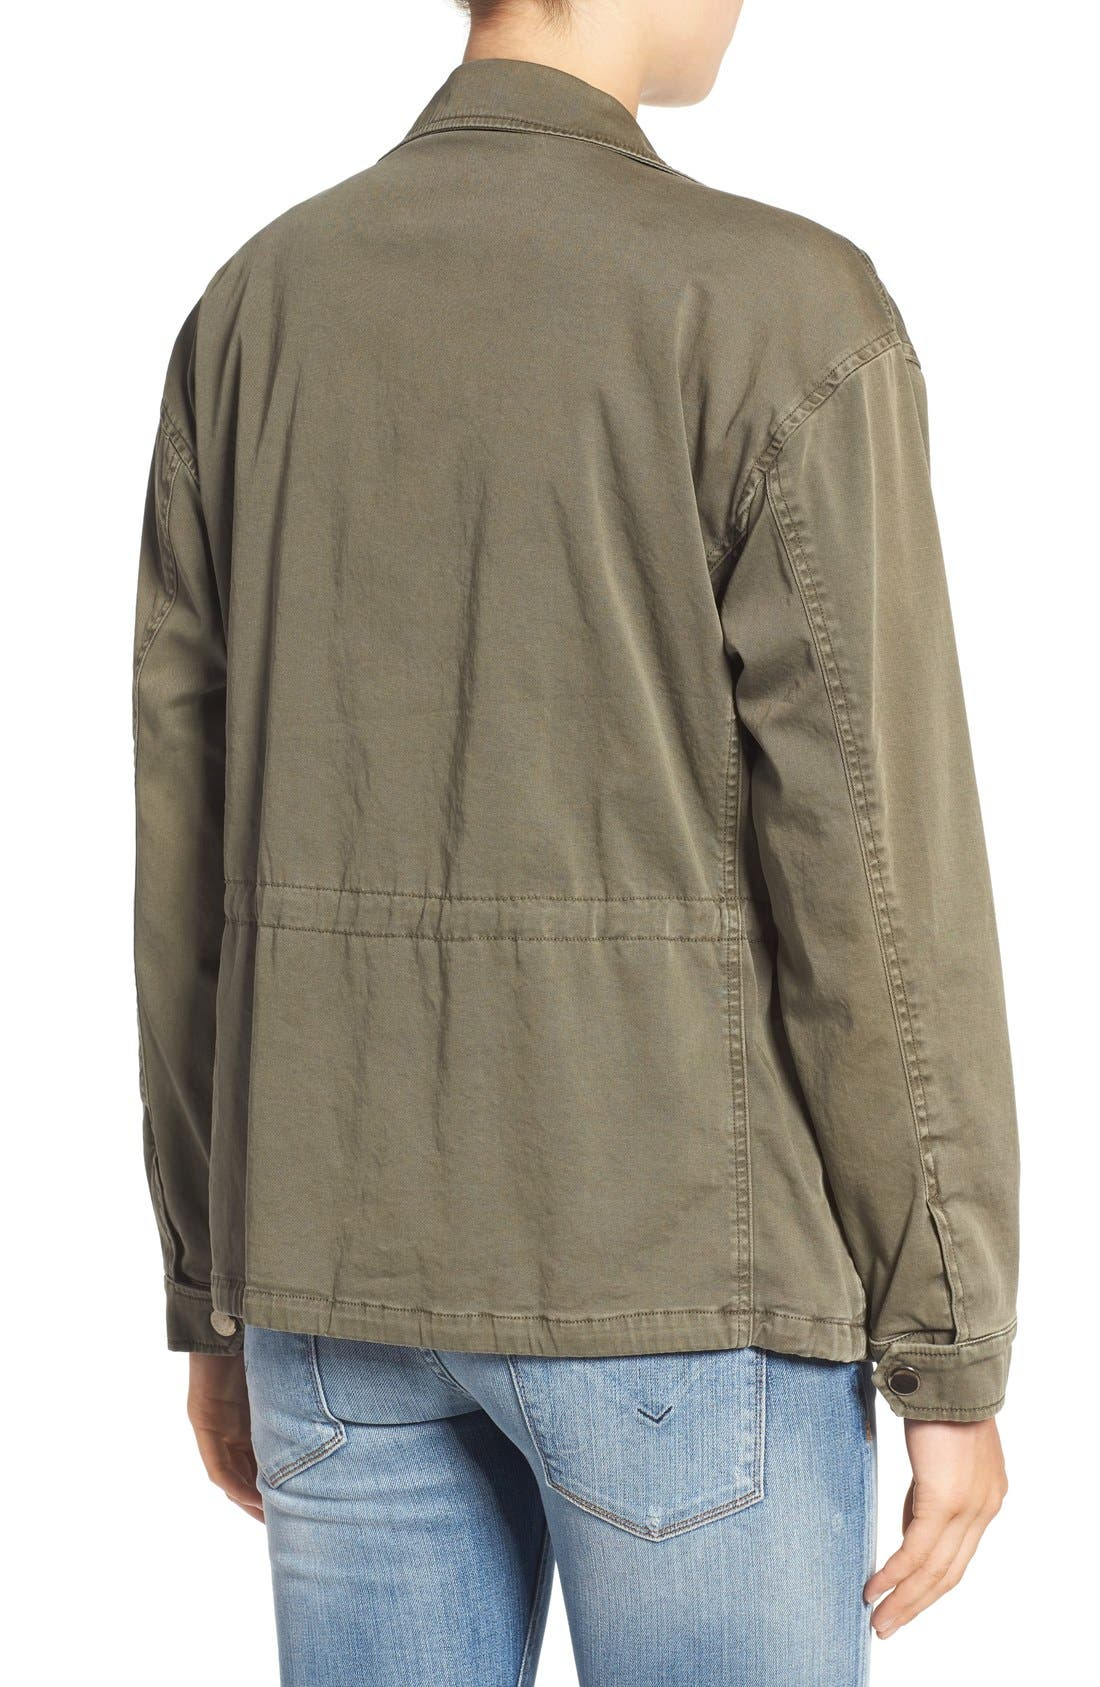 'Sienna' Stretch Cotton Field Jacket,                             Alternate thumbnail 2, color,                             300